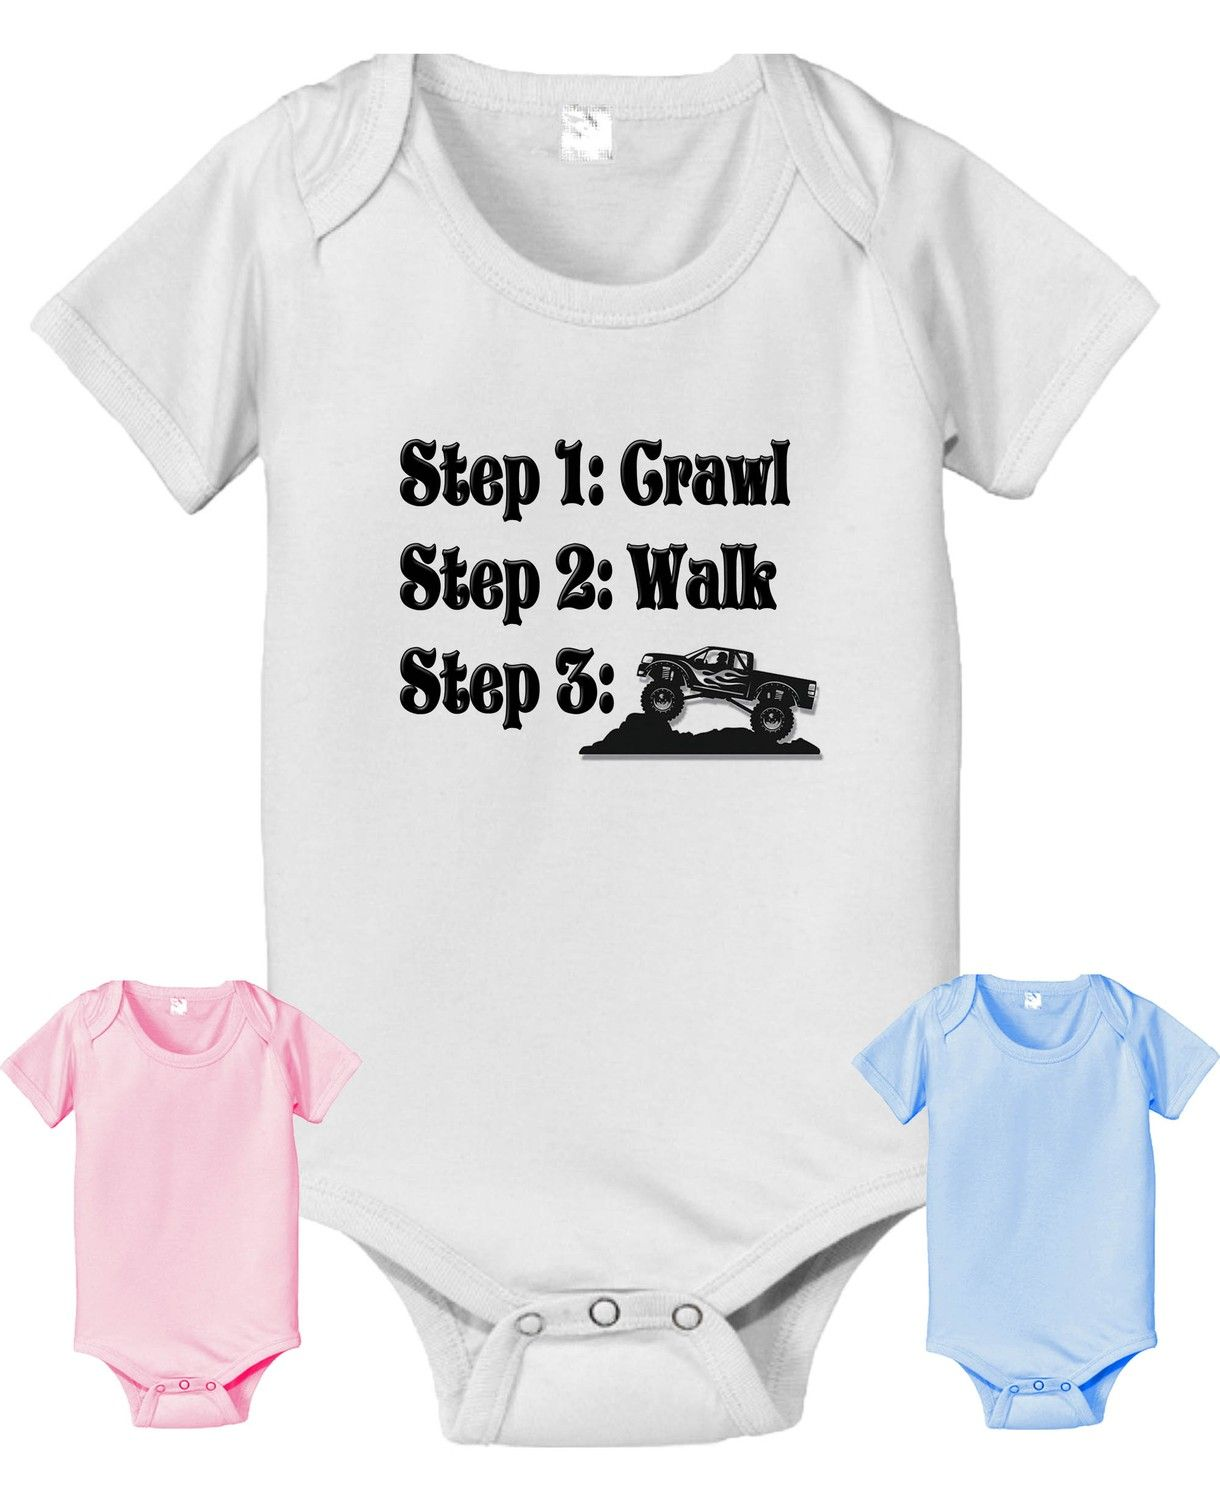 Crawl Walk Baseball Funny Cute Outfit Baby Kids Humor Red Toddler T-Shirt